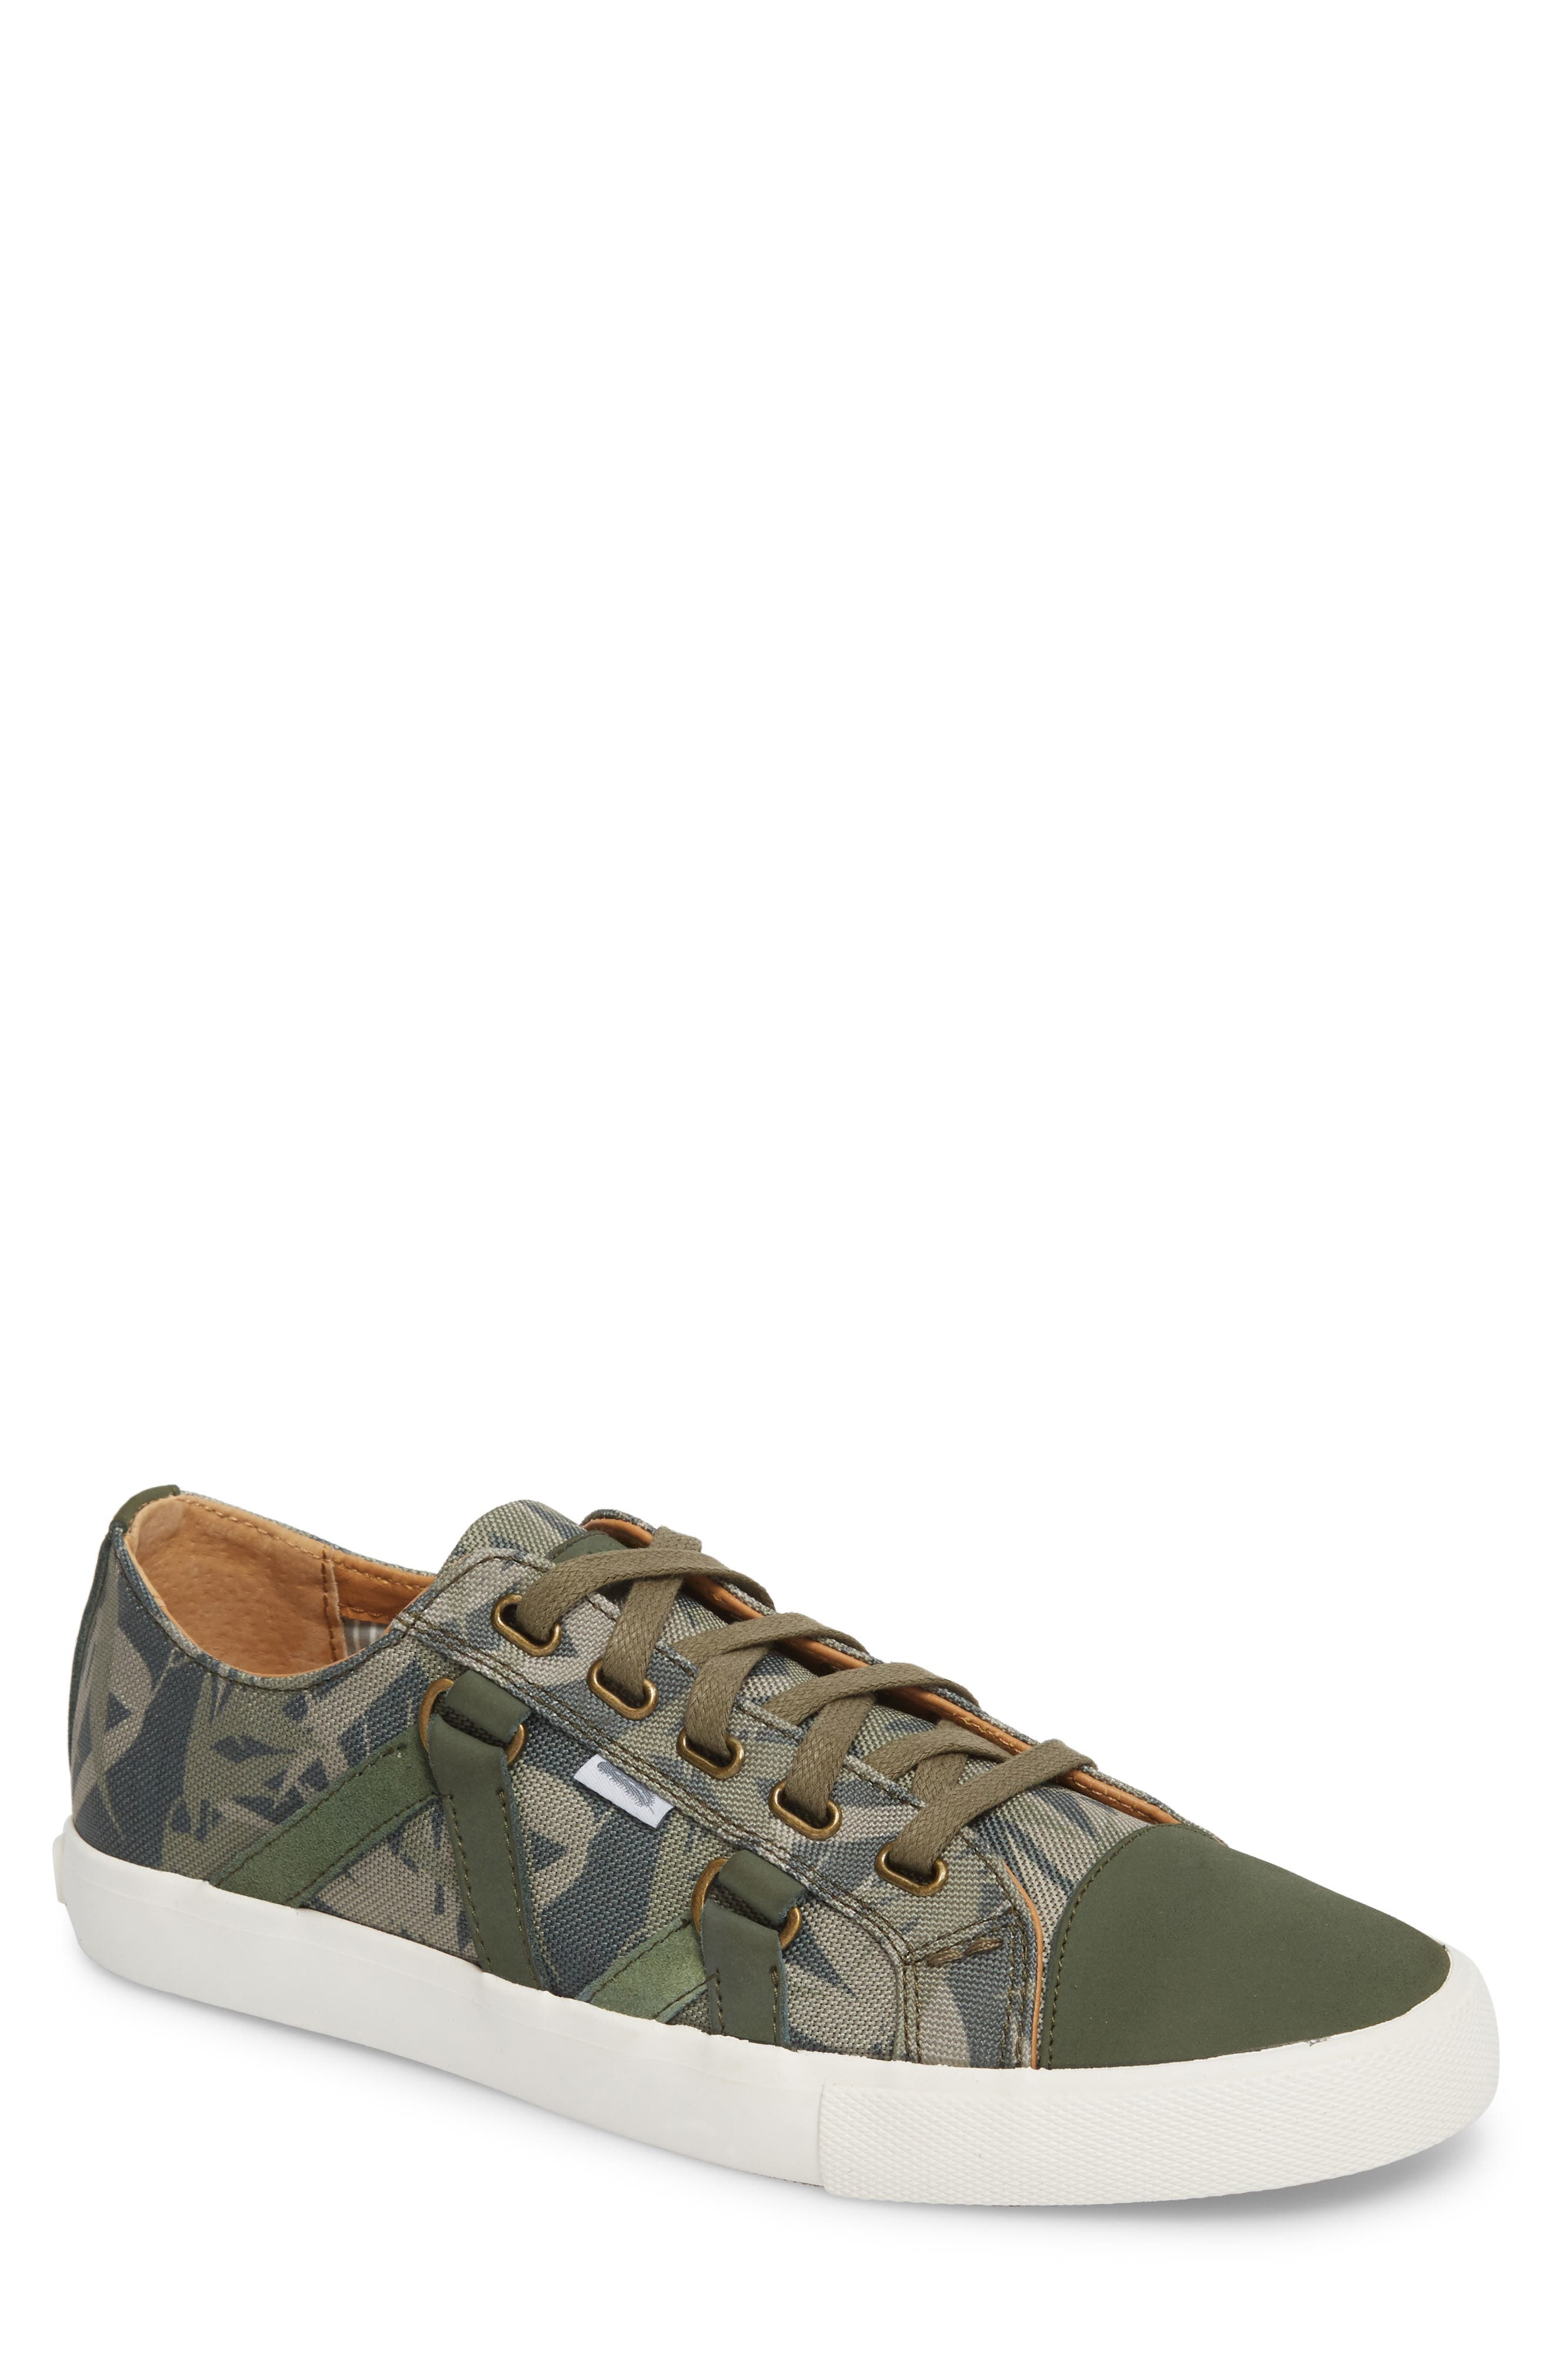 Signature Low Top Sneaker,                         Main,                         color, Bamboo Canvas